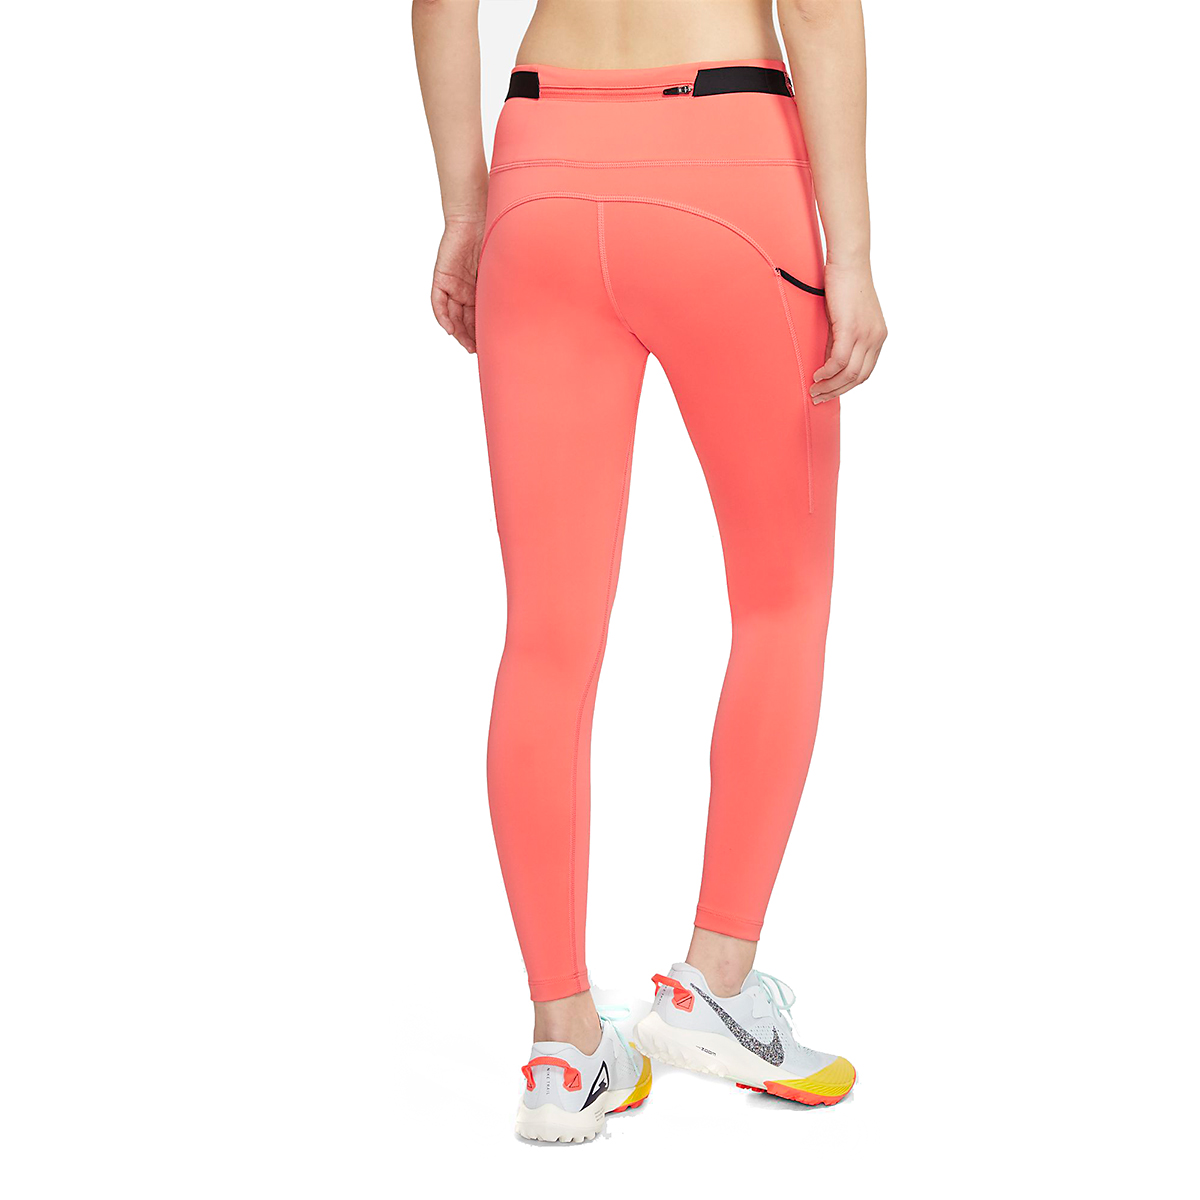 Women's Nike Epic Luxe Trail Running Tights - Color: Magic Ember/Black/Reflective Silver - Size: XXS, Magic Ember/Black/Reflective Silver, large, image 2